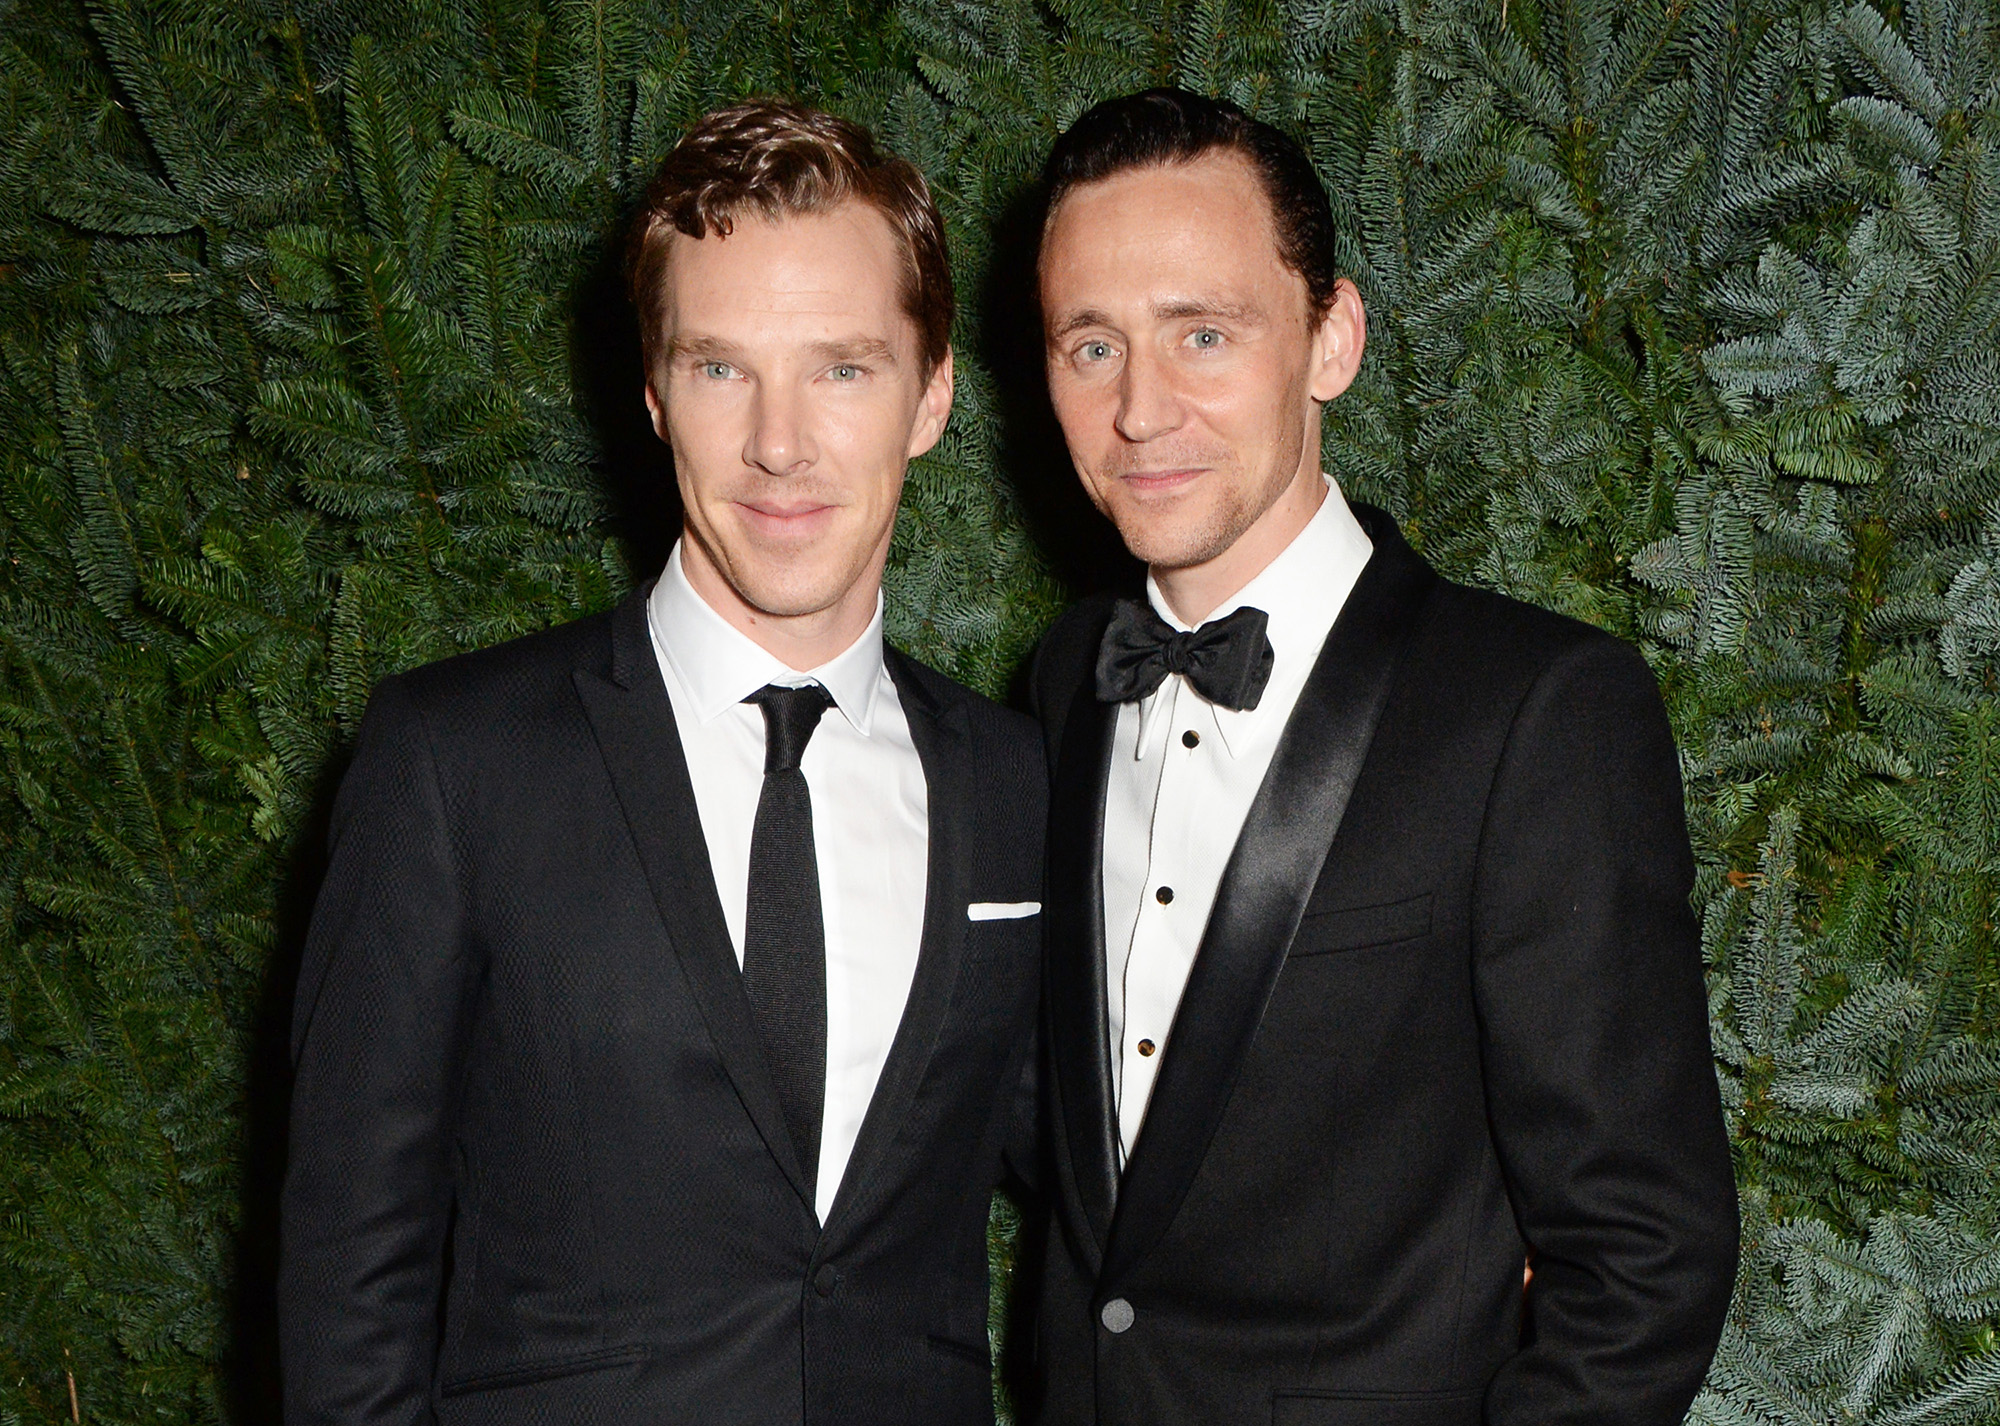 Benedict Cumberbatch and Tom Hiddleston attend a champagne reception at the 60th London Evening Standard Theatre Awards at the London Palladium on November 30, 2014 in London, England.  (Photo by David M. Benett/Getty Images)